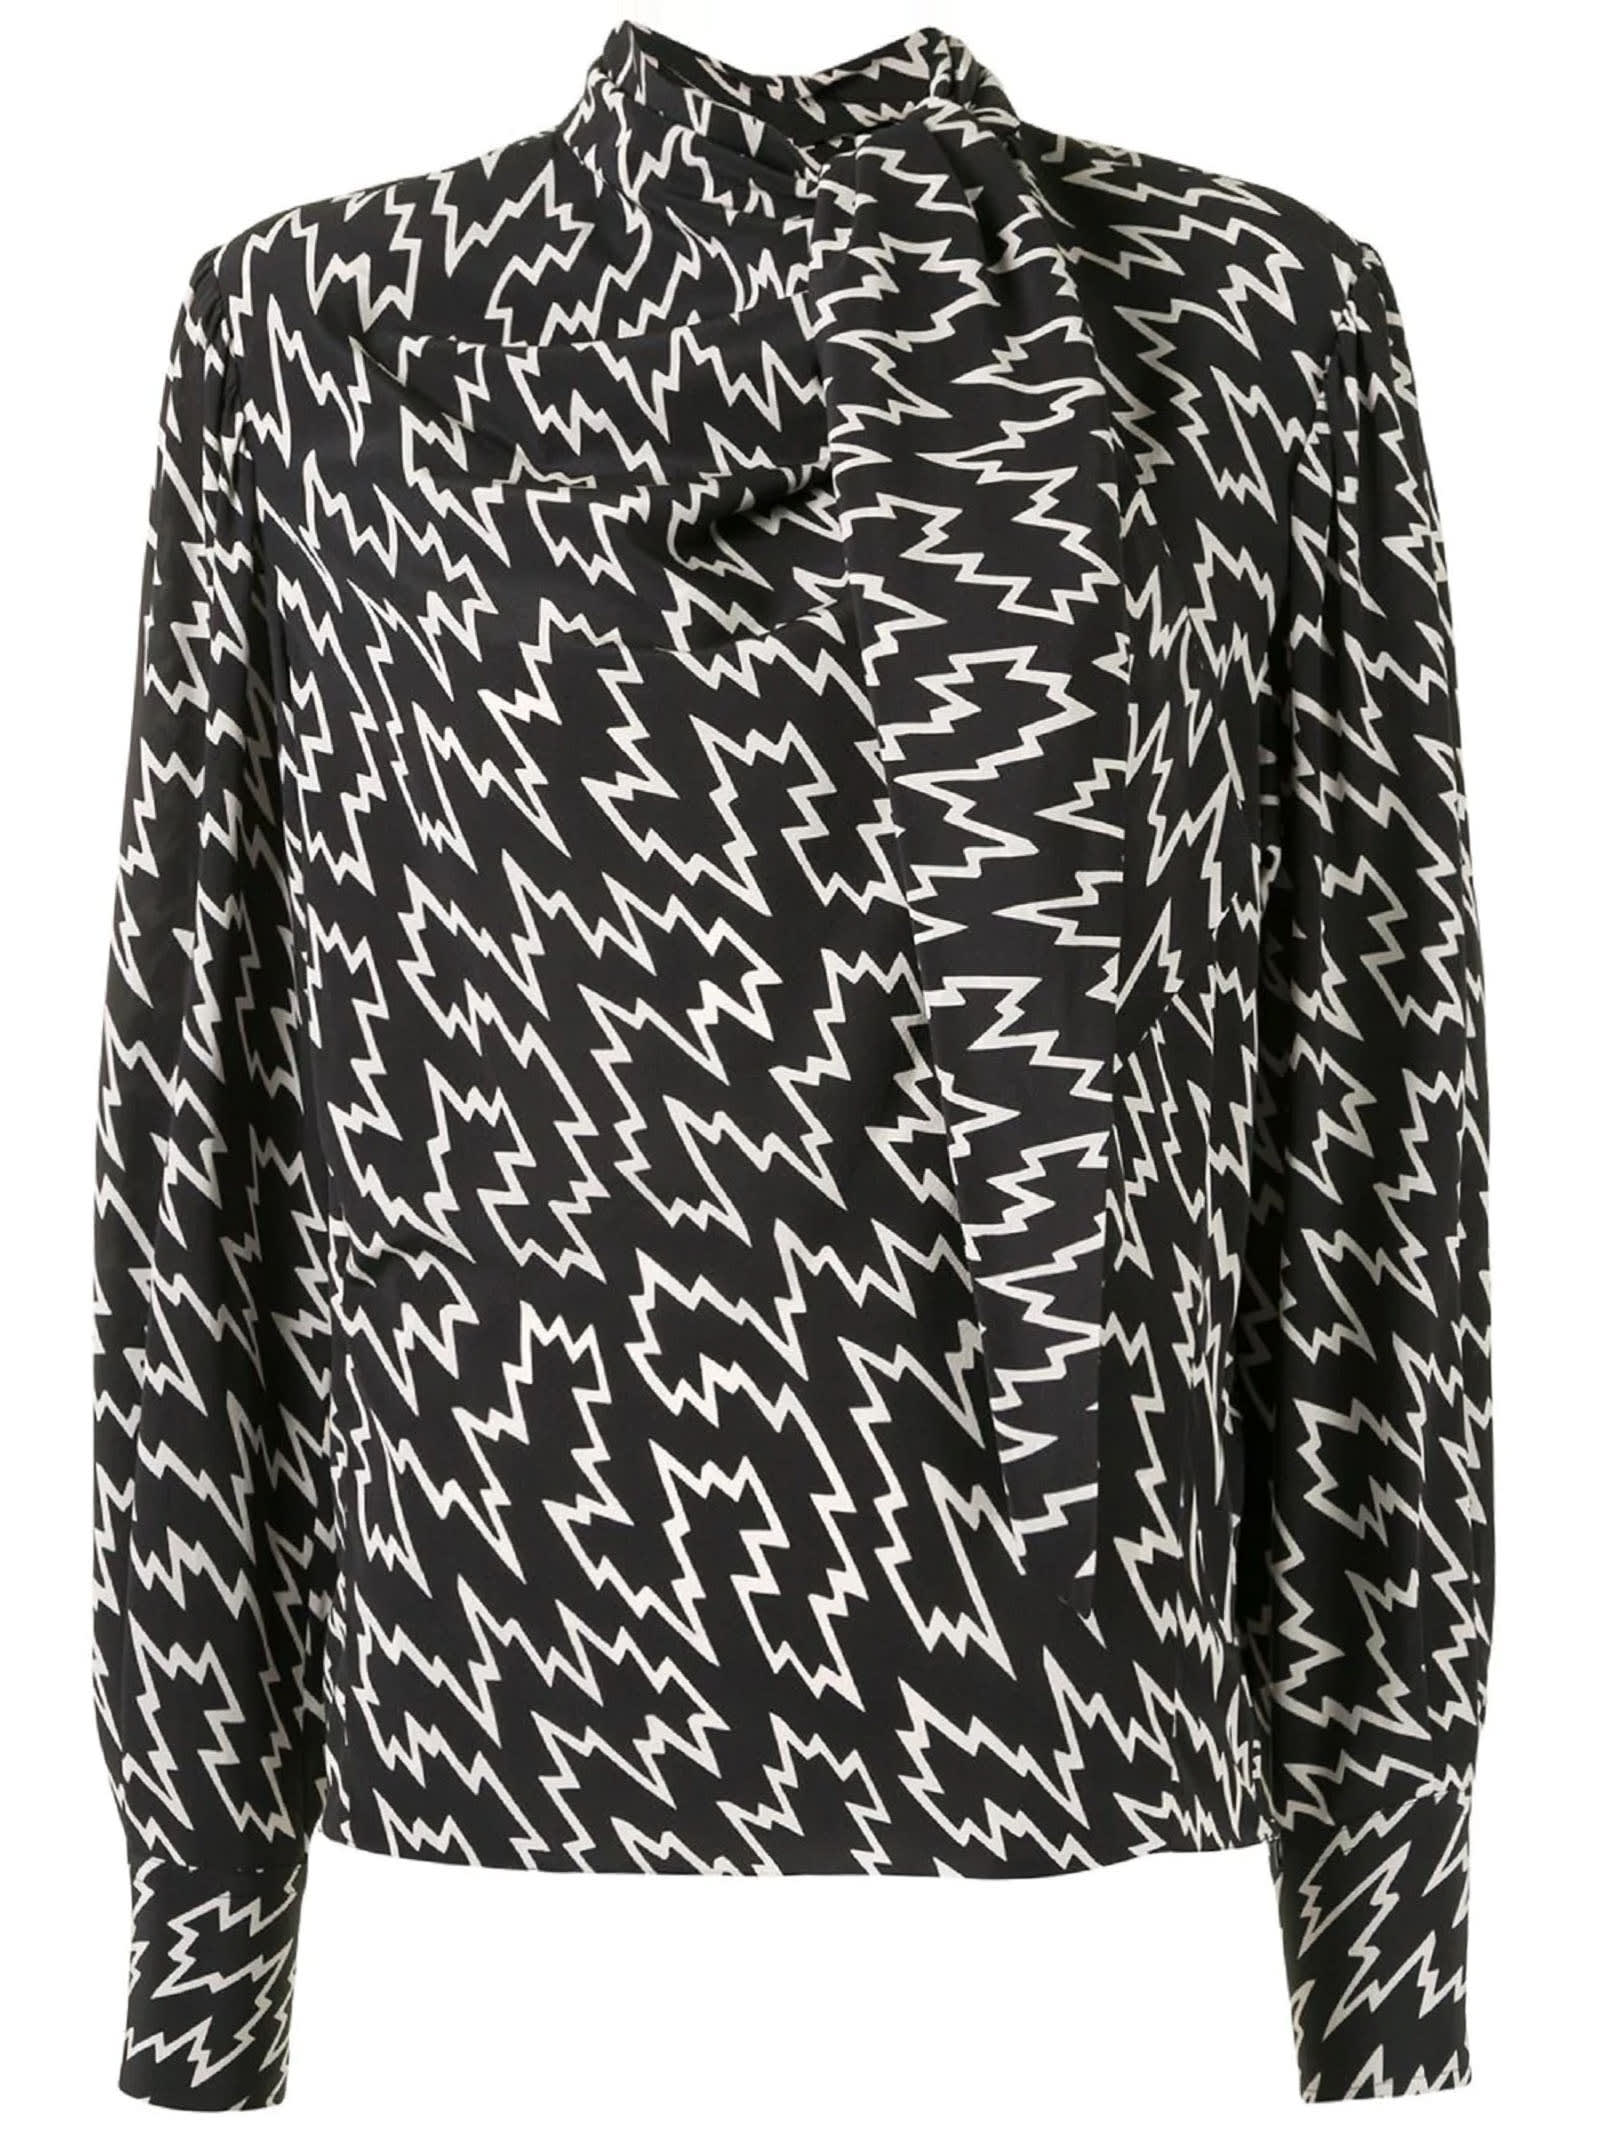 Isabel Marant Black Stretch Silk Blouse In Fantasia